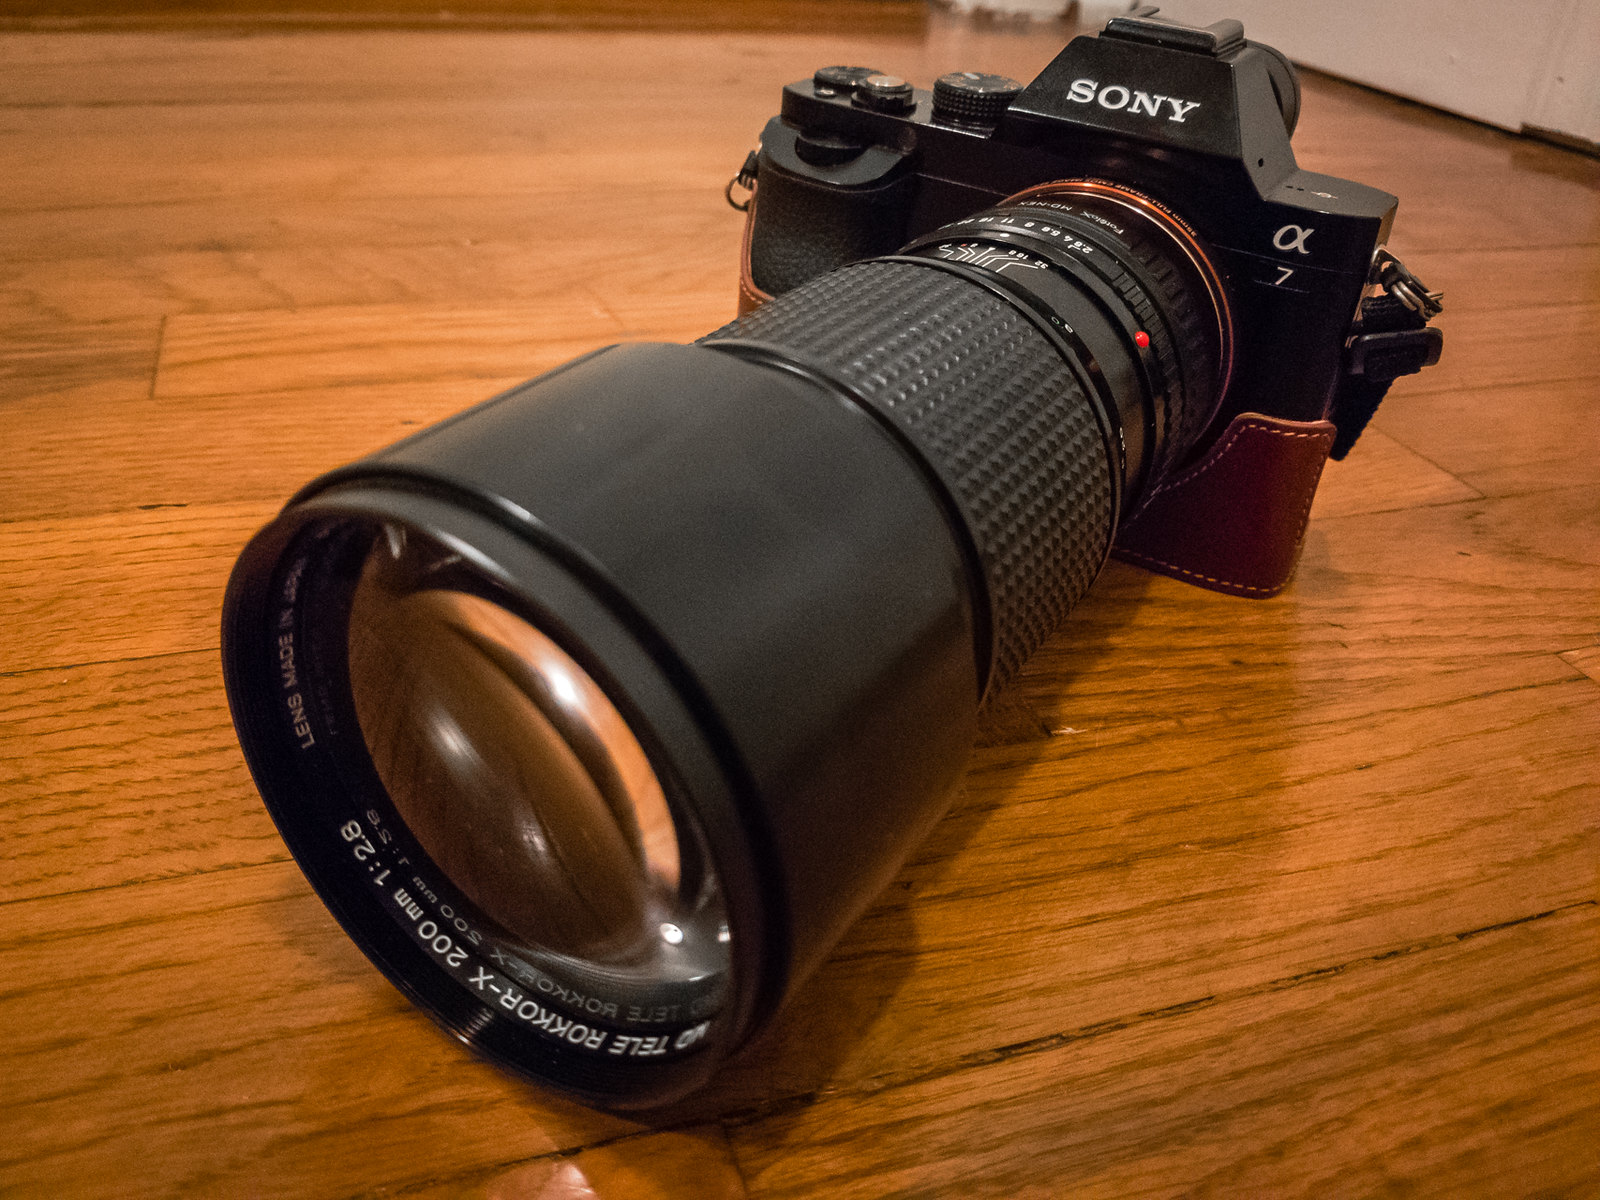 Sony A7 with Minolta Rokkor-x 200mm f/2.8 lens.